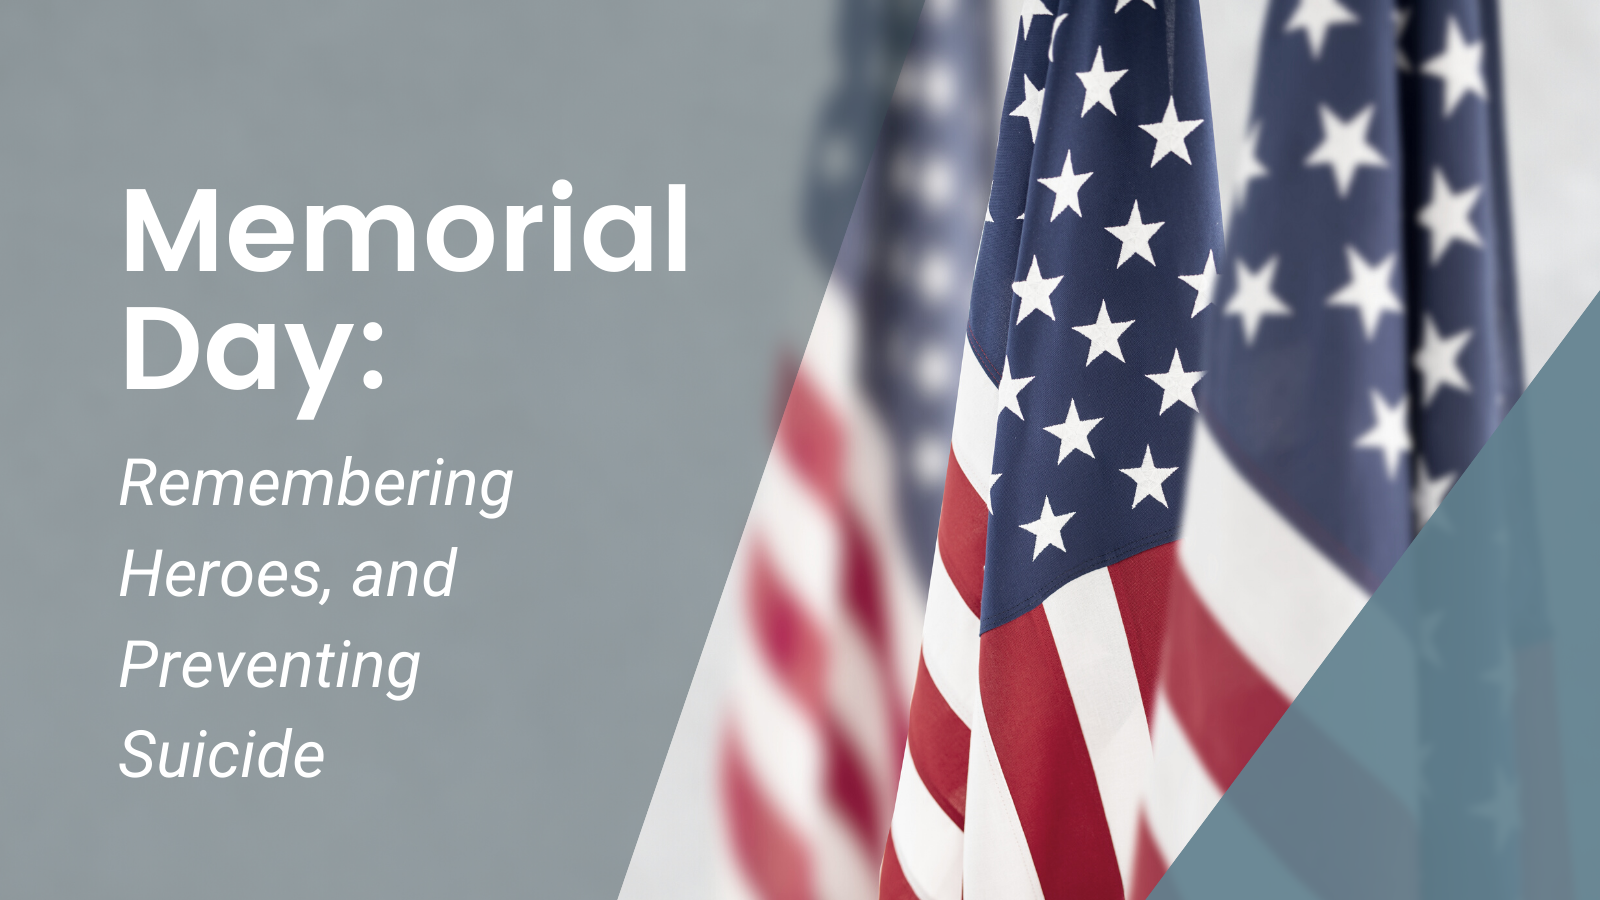 Memorial Day: Remembering Heroes, and Preventing Suicide